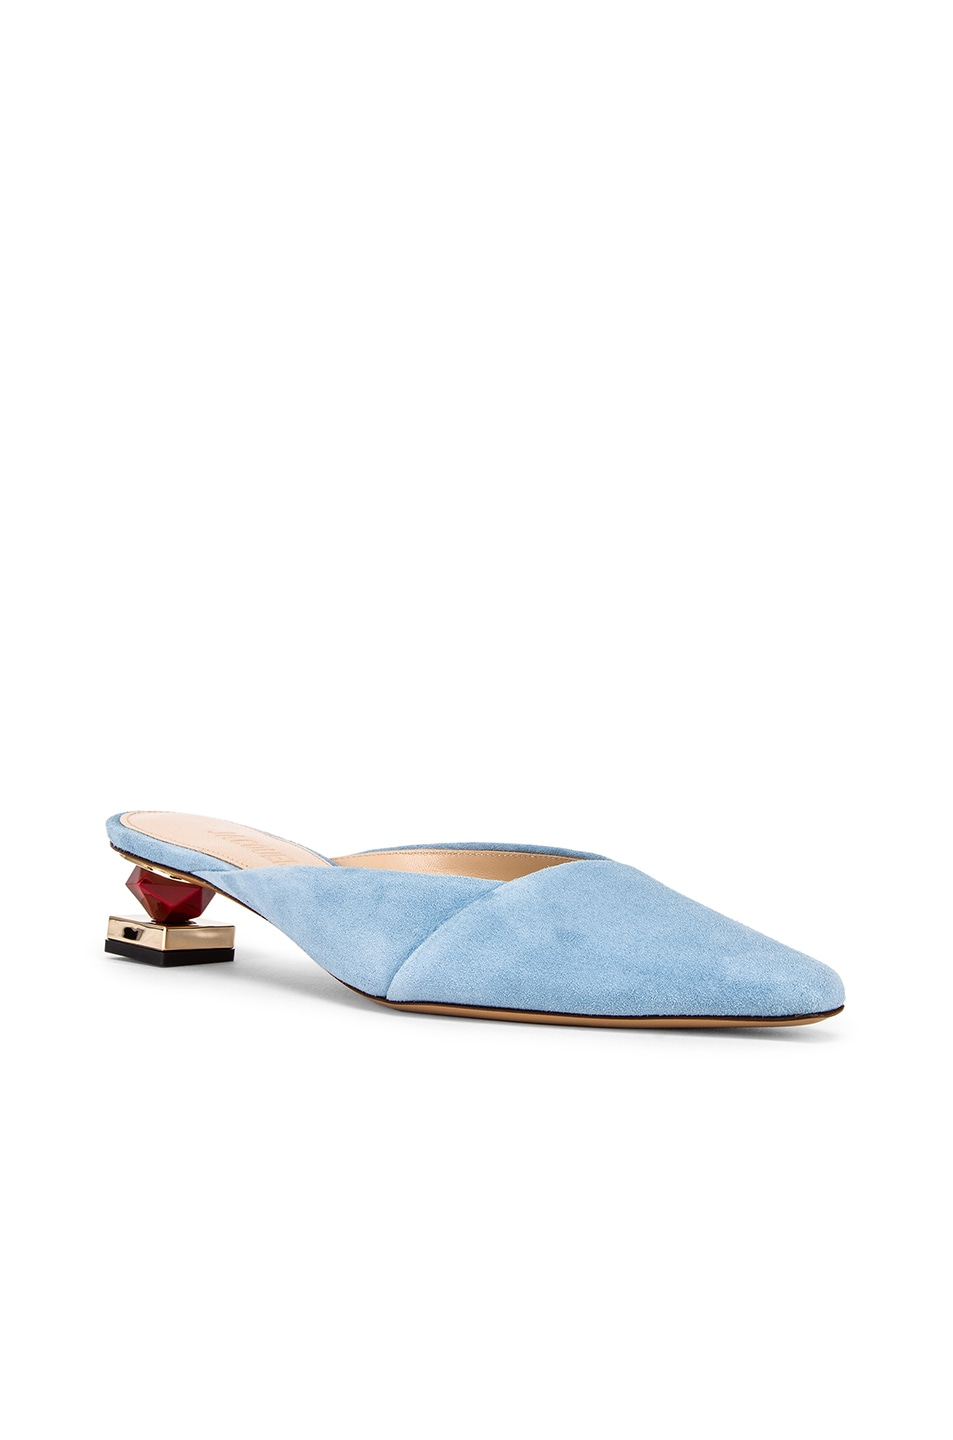 Image 3 of JACQUEMUS Maceio Mules in Light Blue Suede